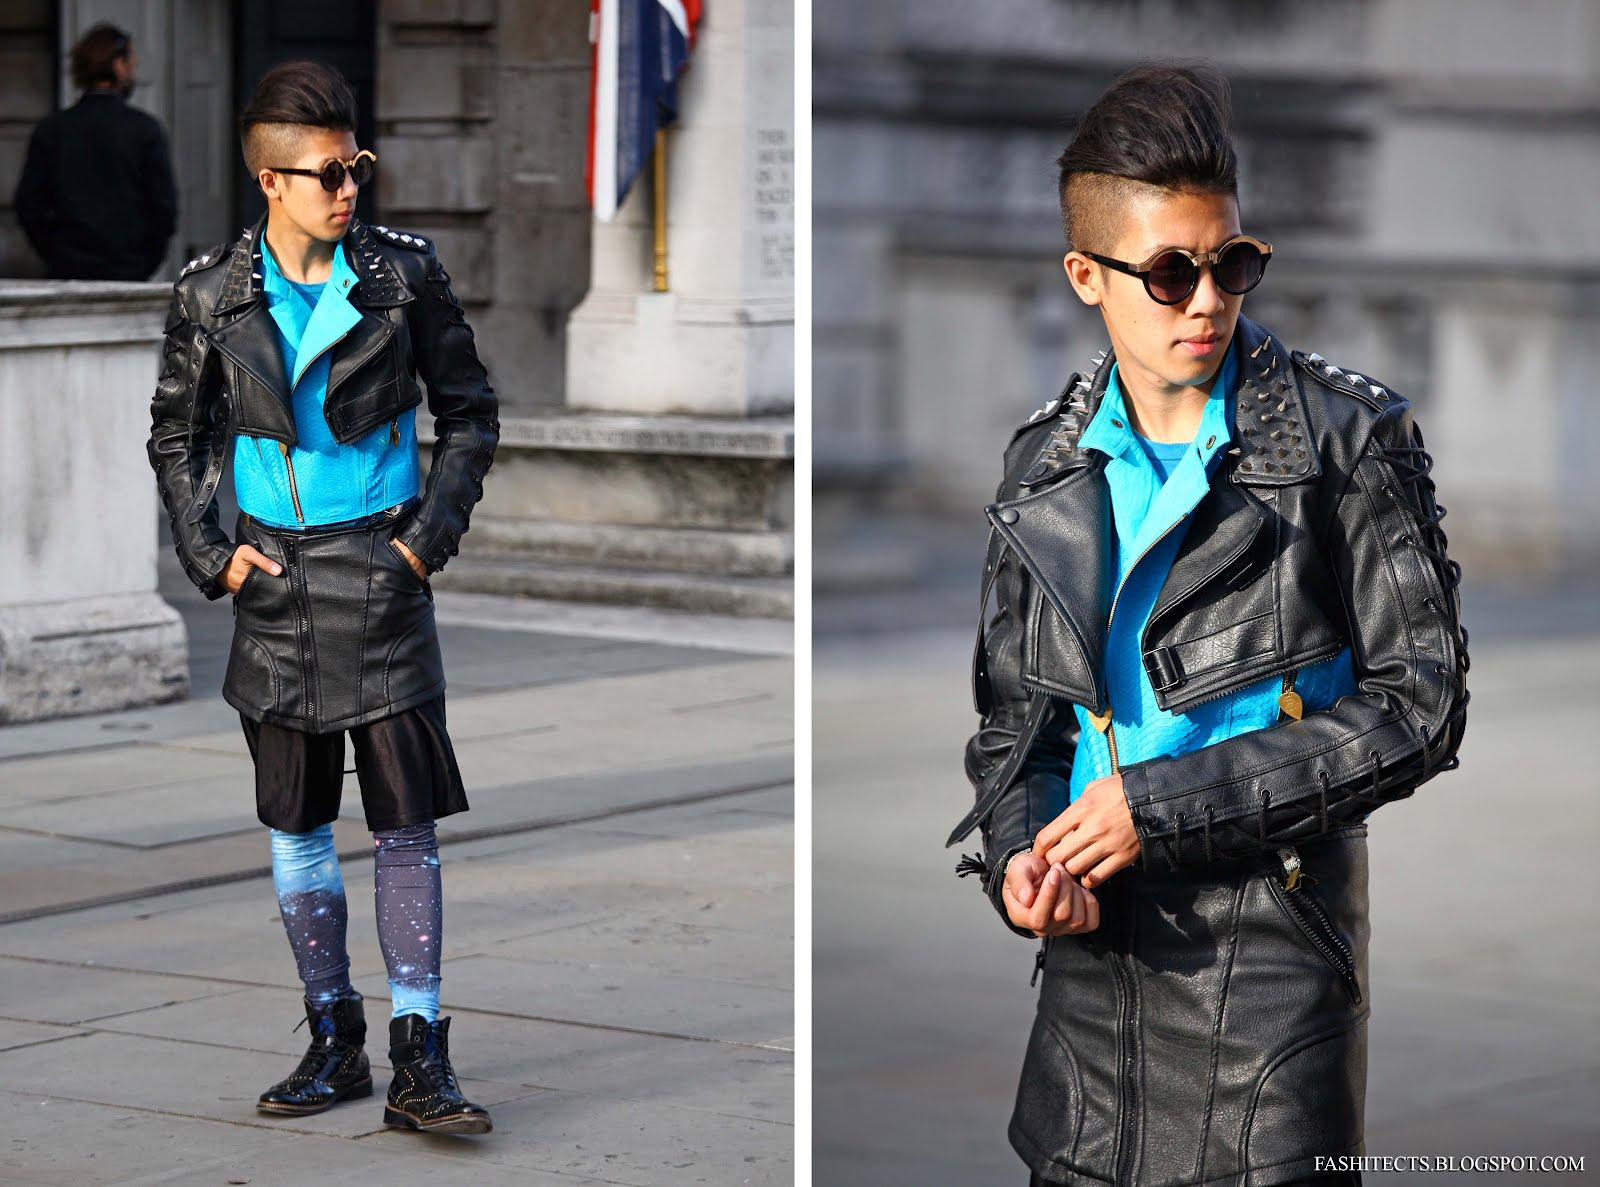 LFW Outfit Day 3: Futuristic Galaxy